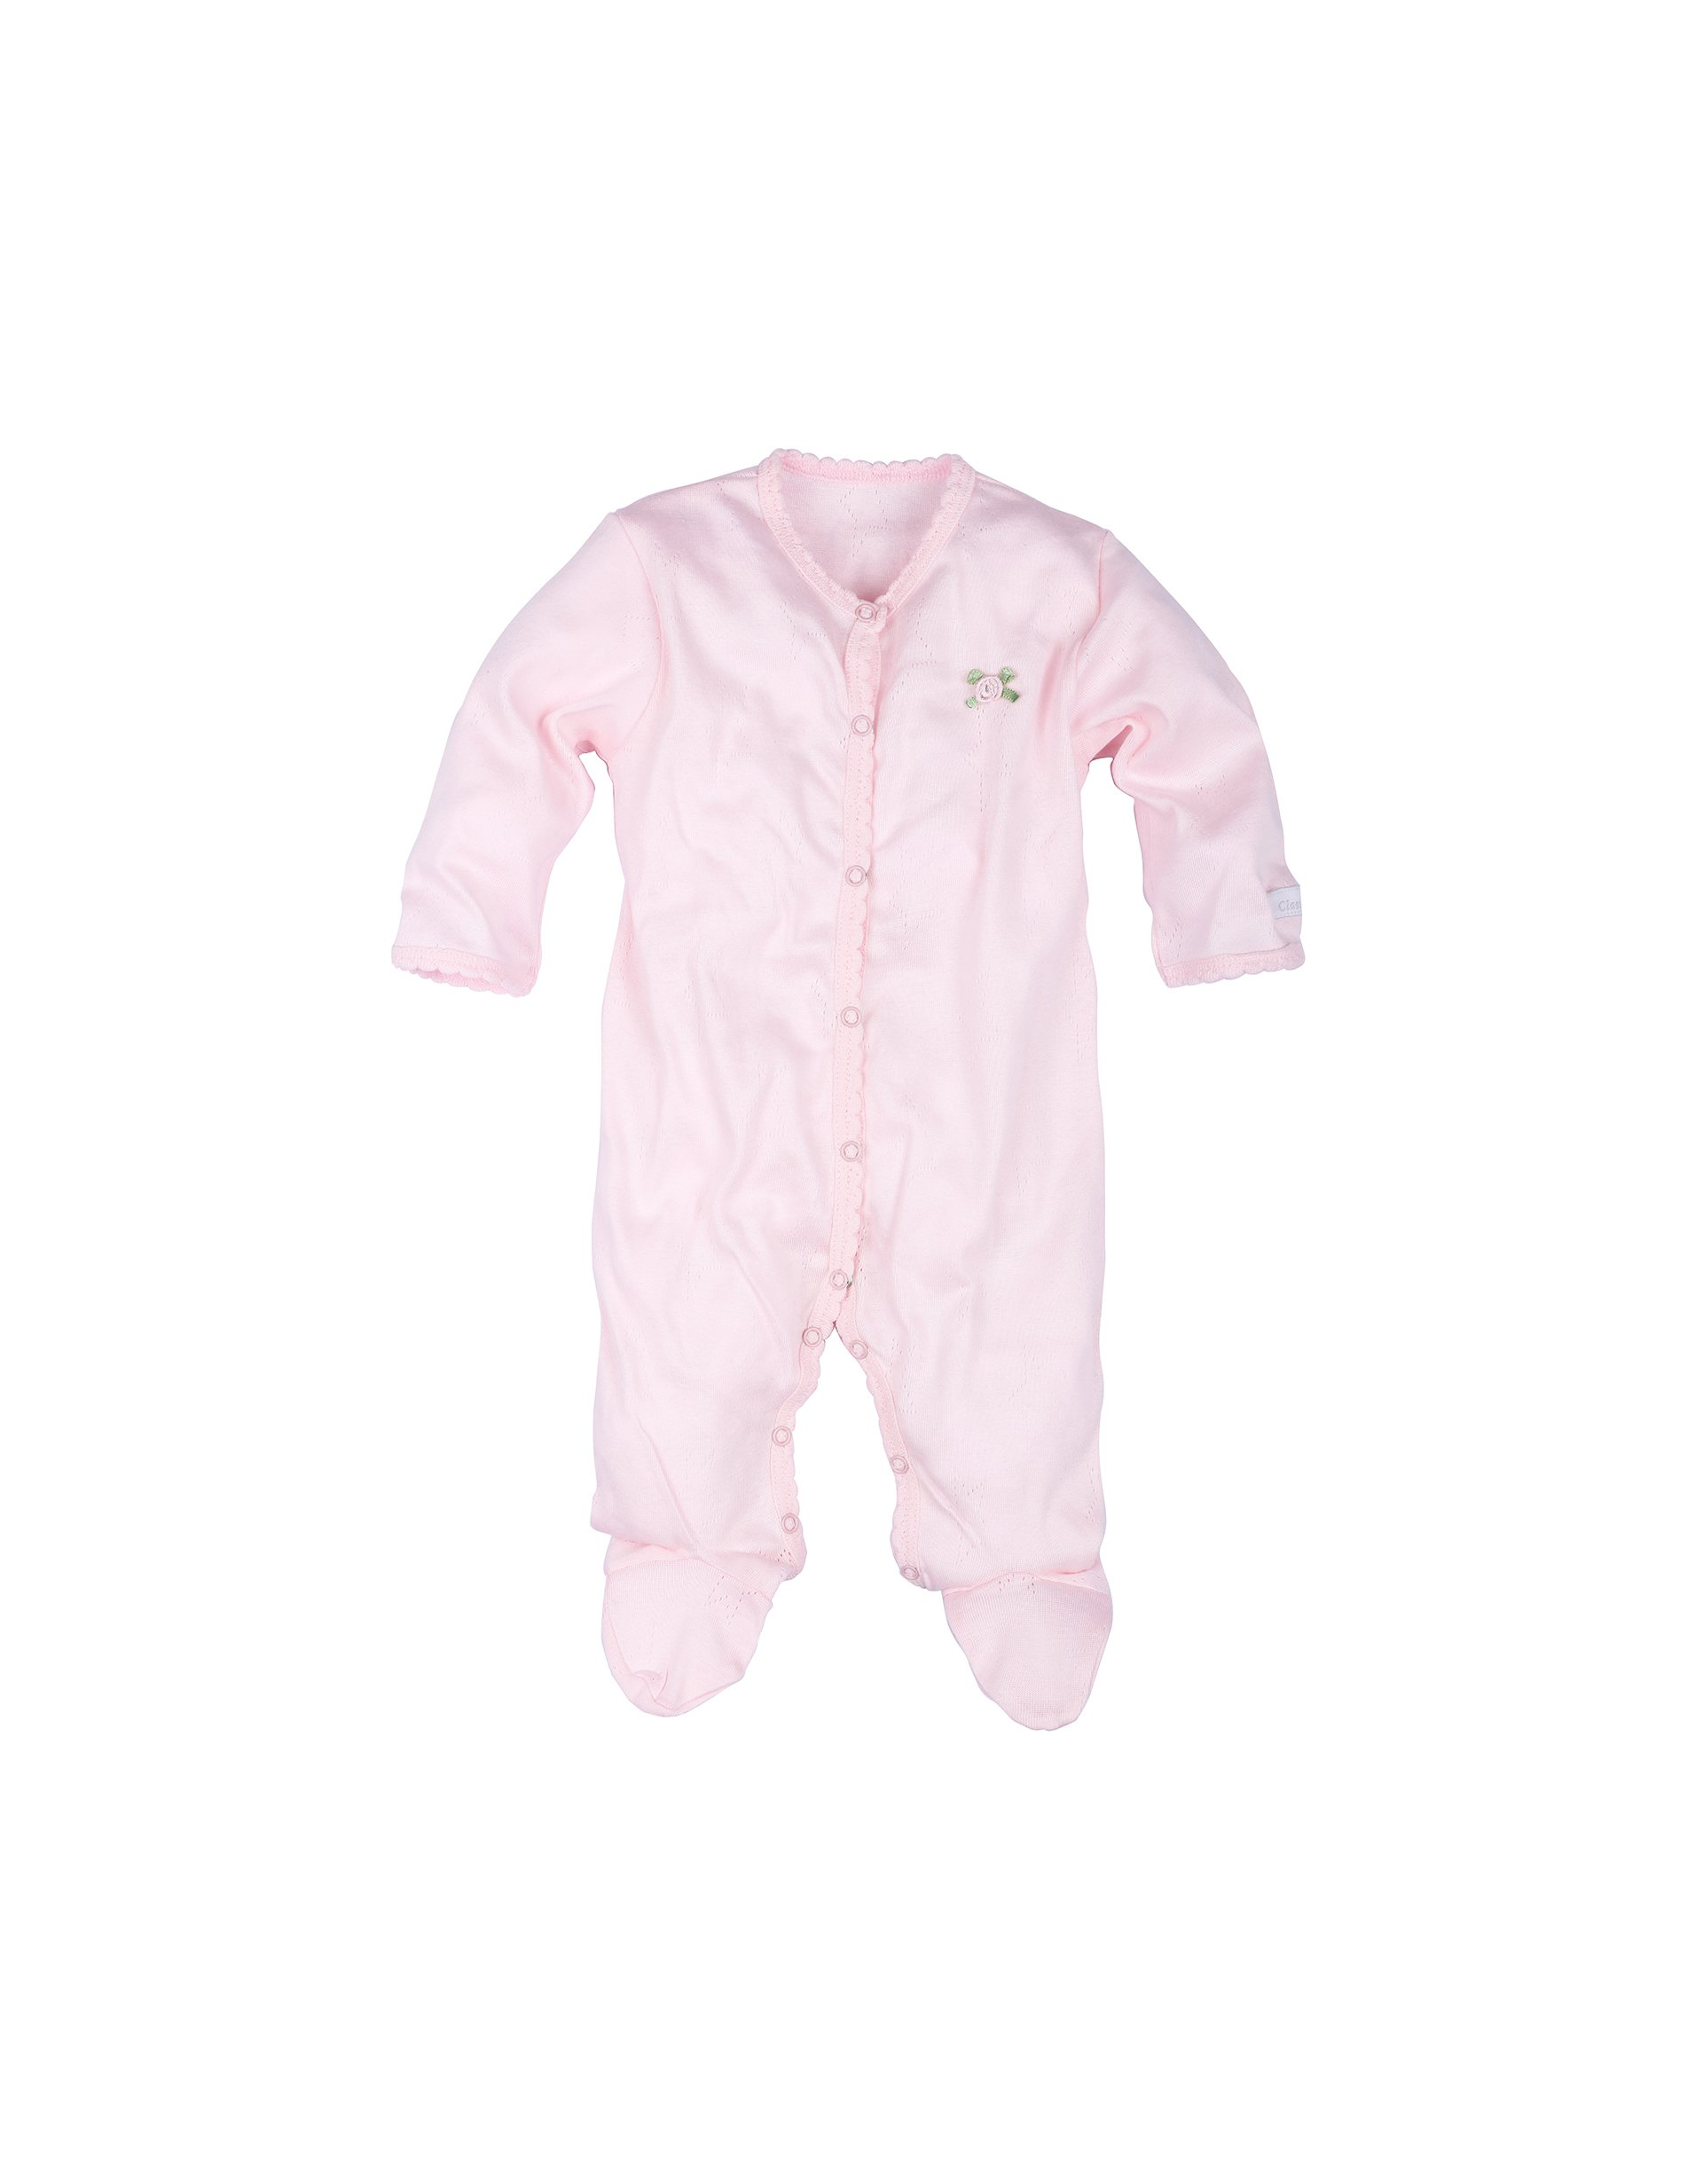 Baby Onepiece with Feet